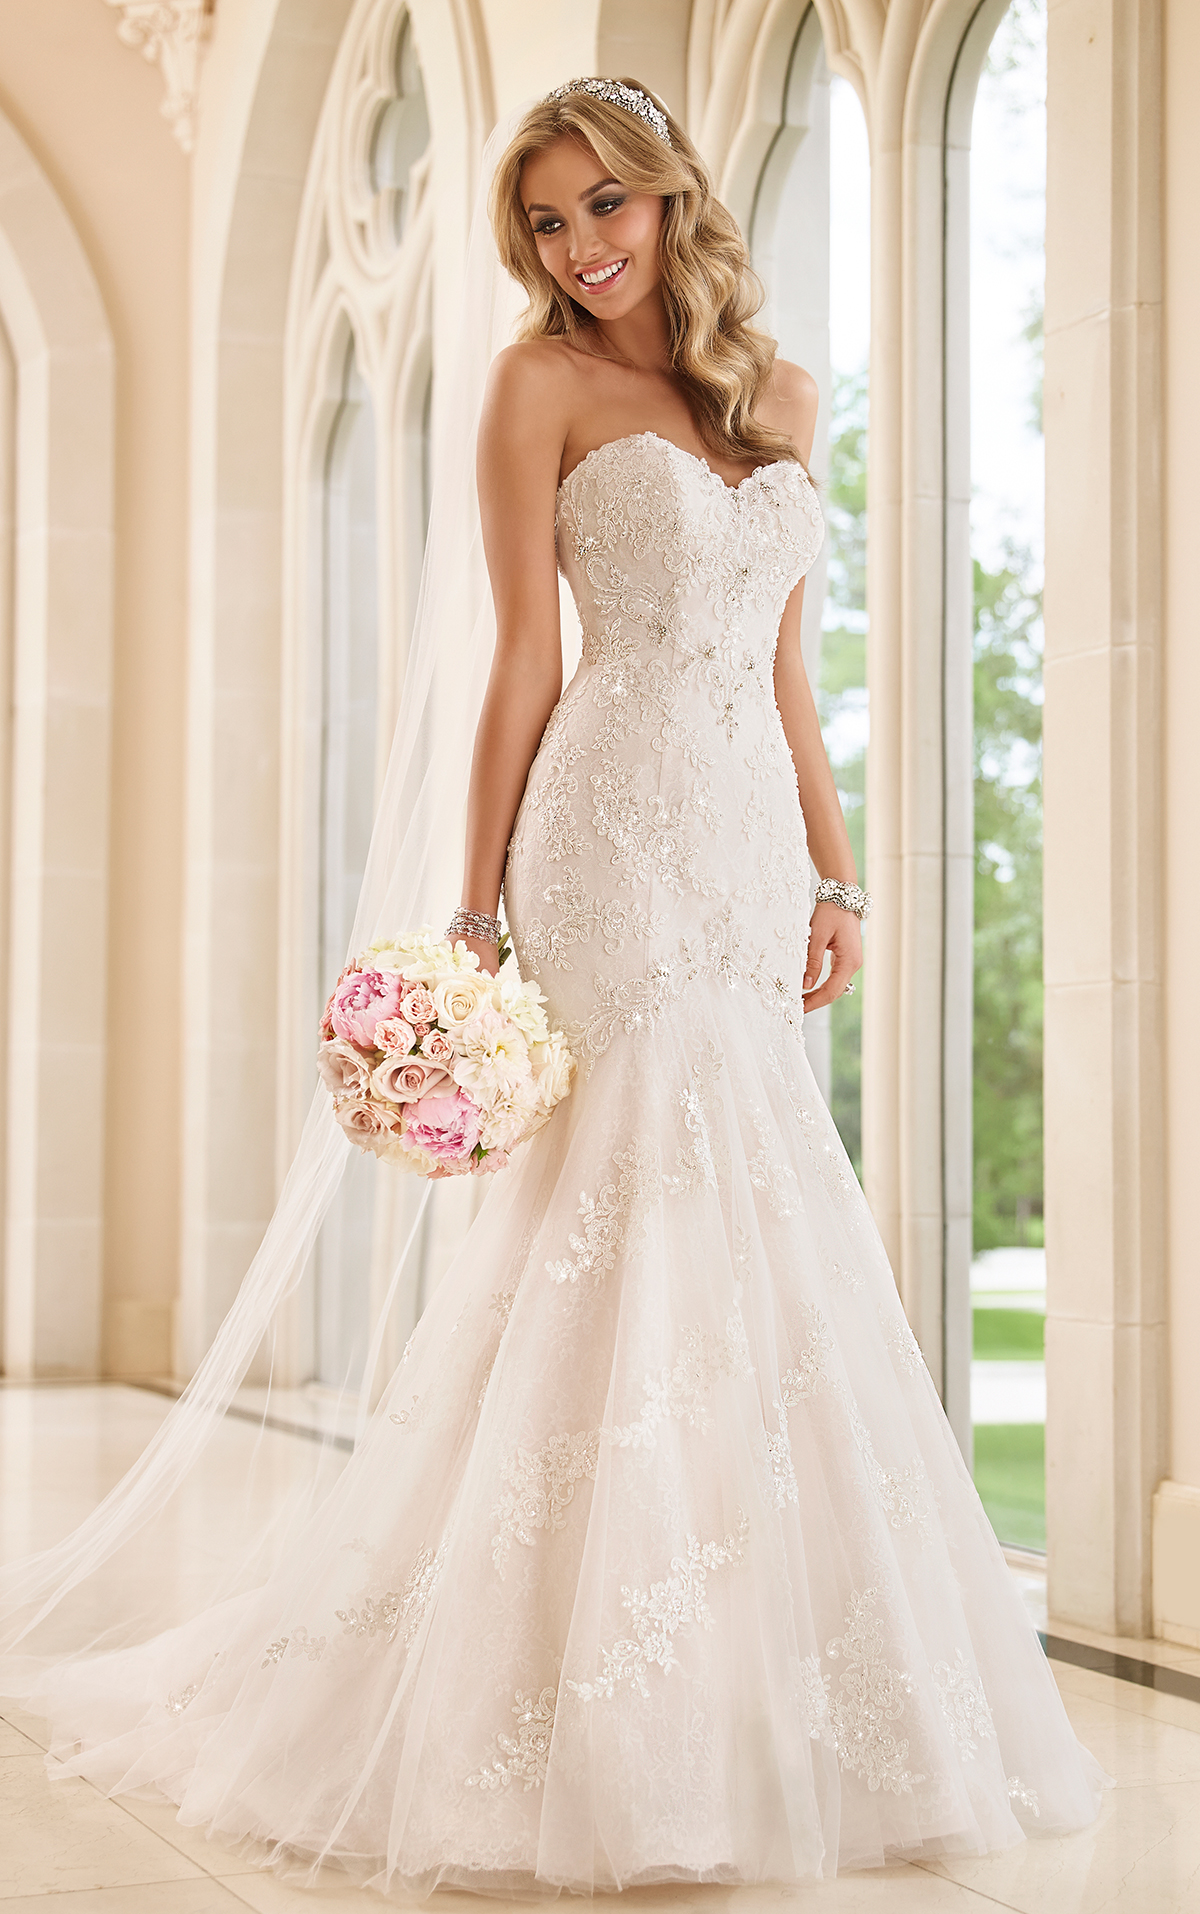 8a48f7adfb Dressed in spectacular beaded hand-placed Lace and enchanting Tulle, this Stella  York sexy fit-and-flare wedding dress features beautiful Diamante crystals  ...